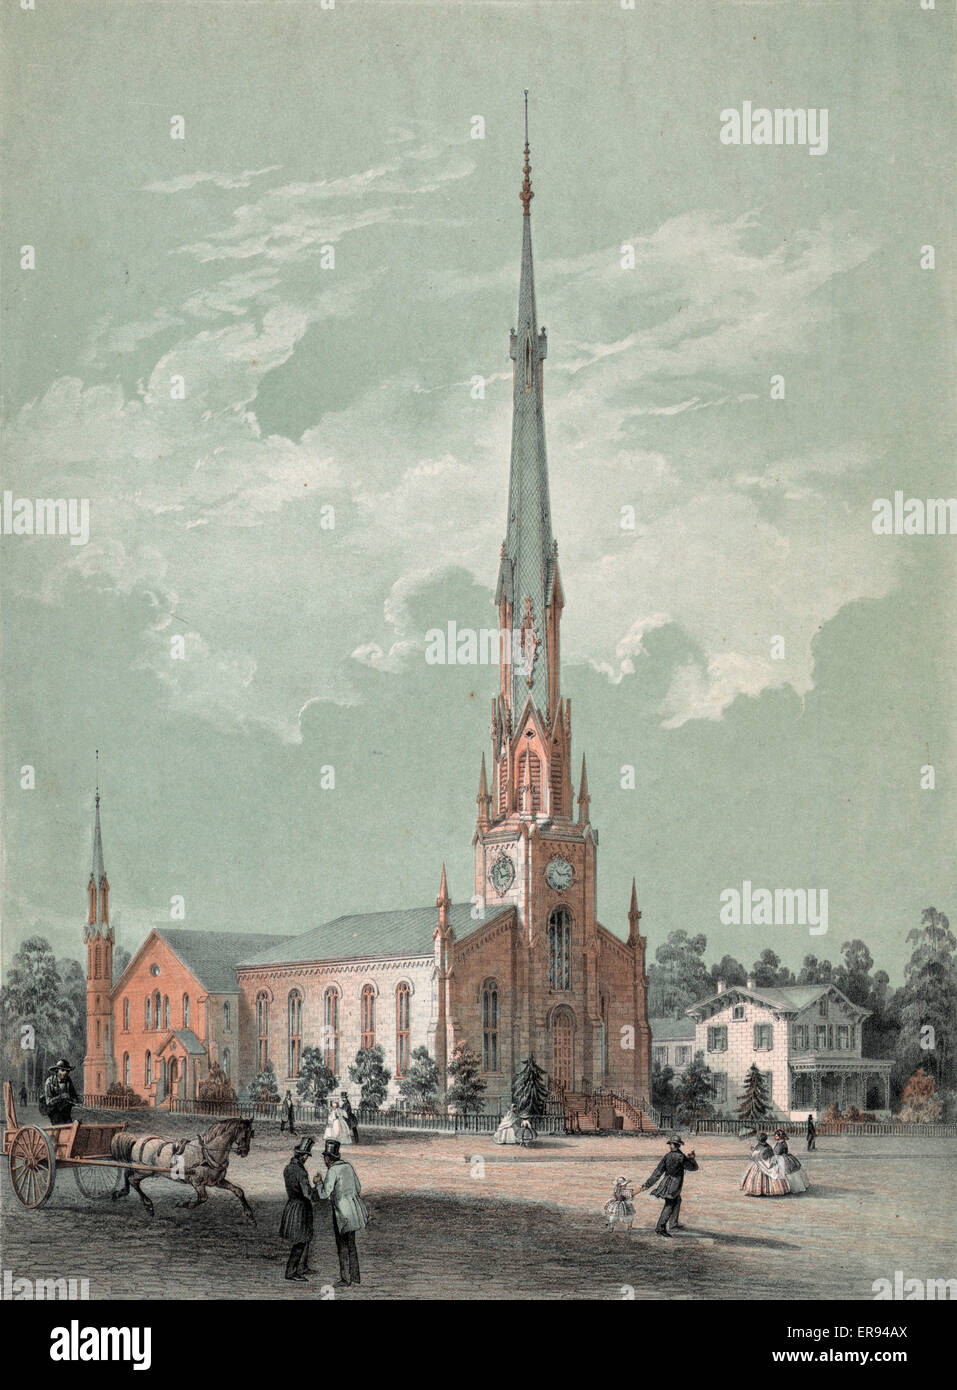 Christ Church, Germantown, Phila. Print shows an exterior view from the street of Christ Church, with pedestrians - Stock Image